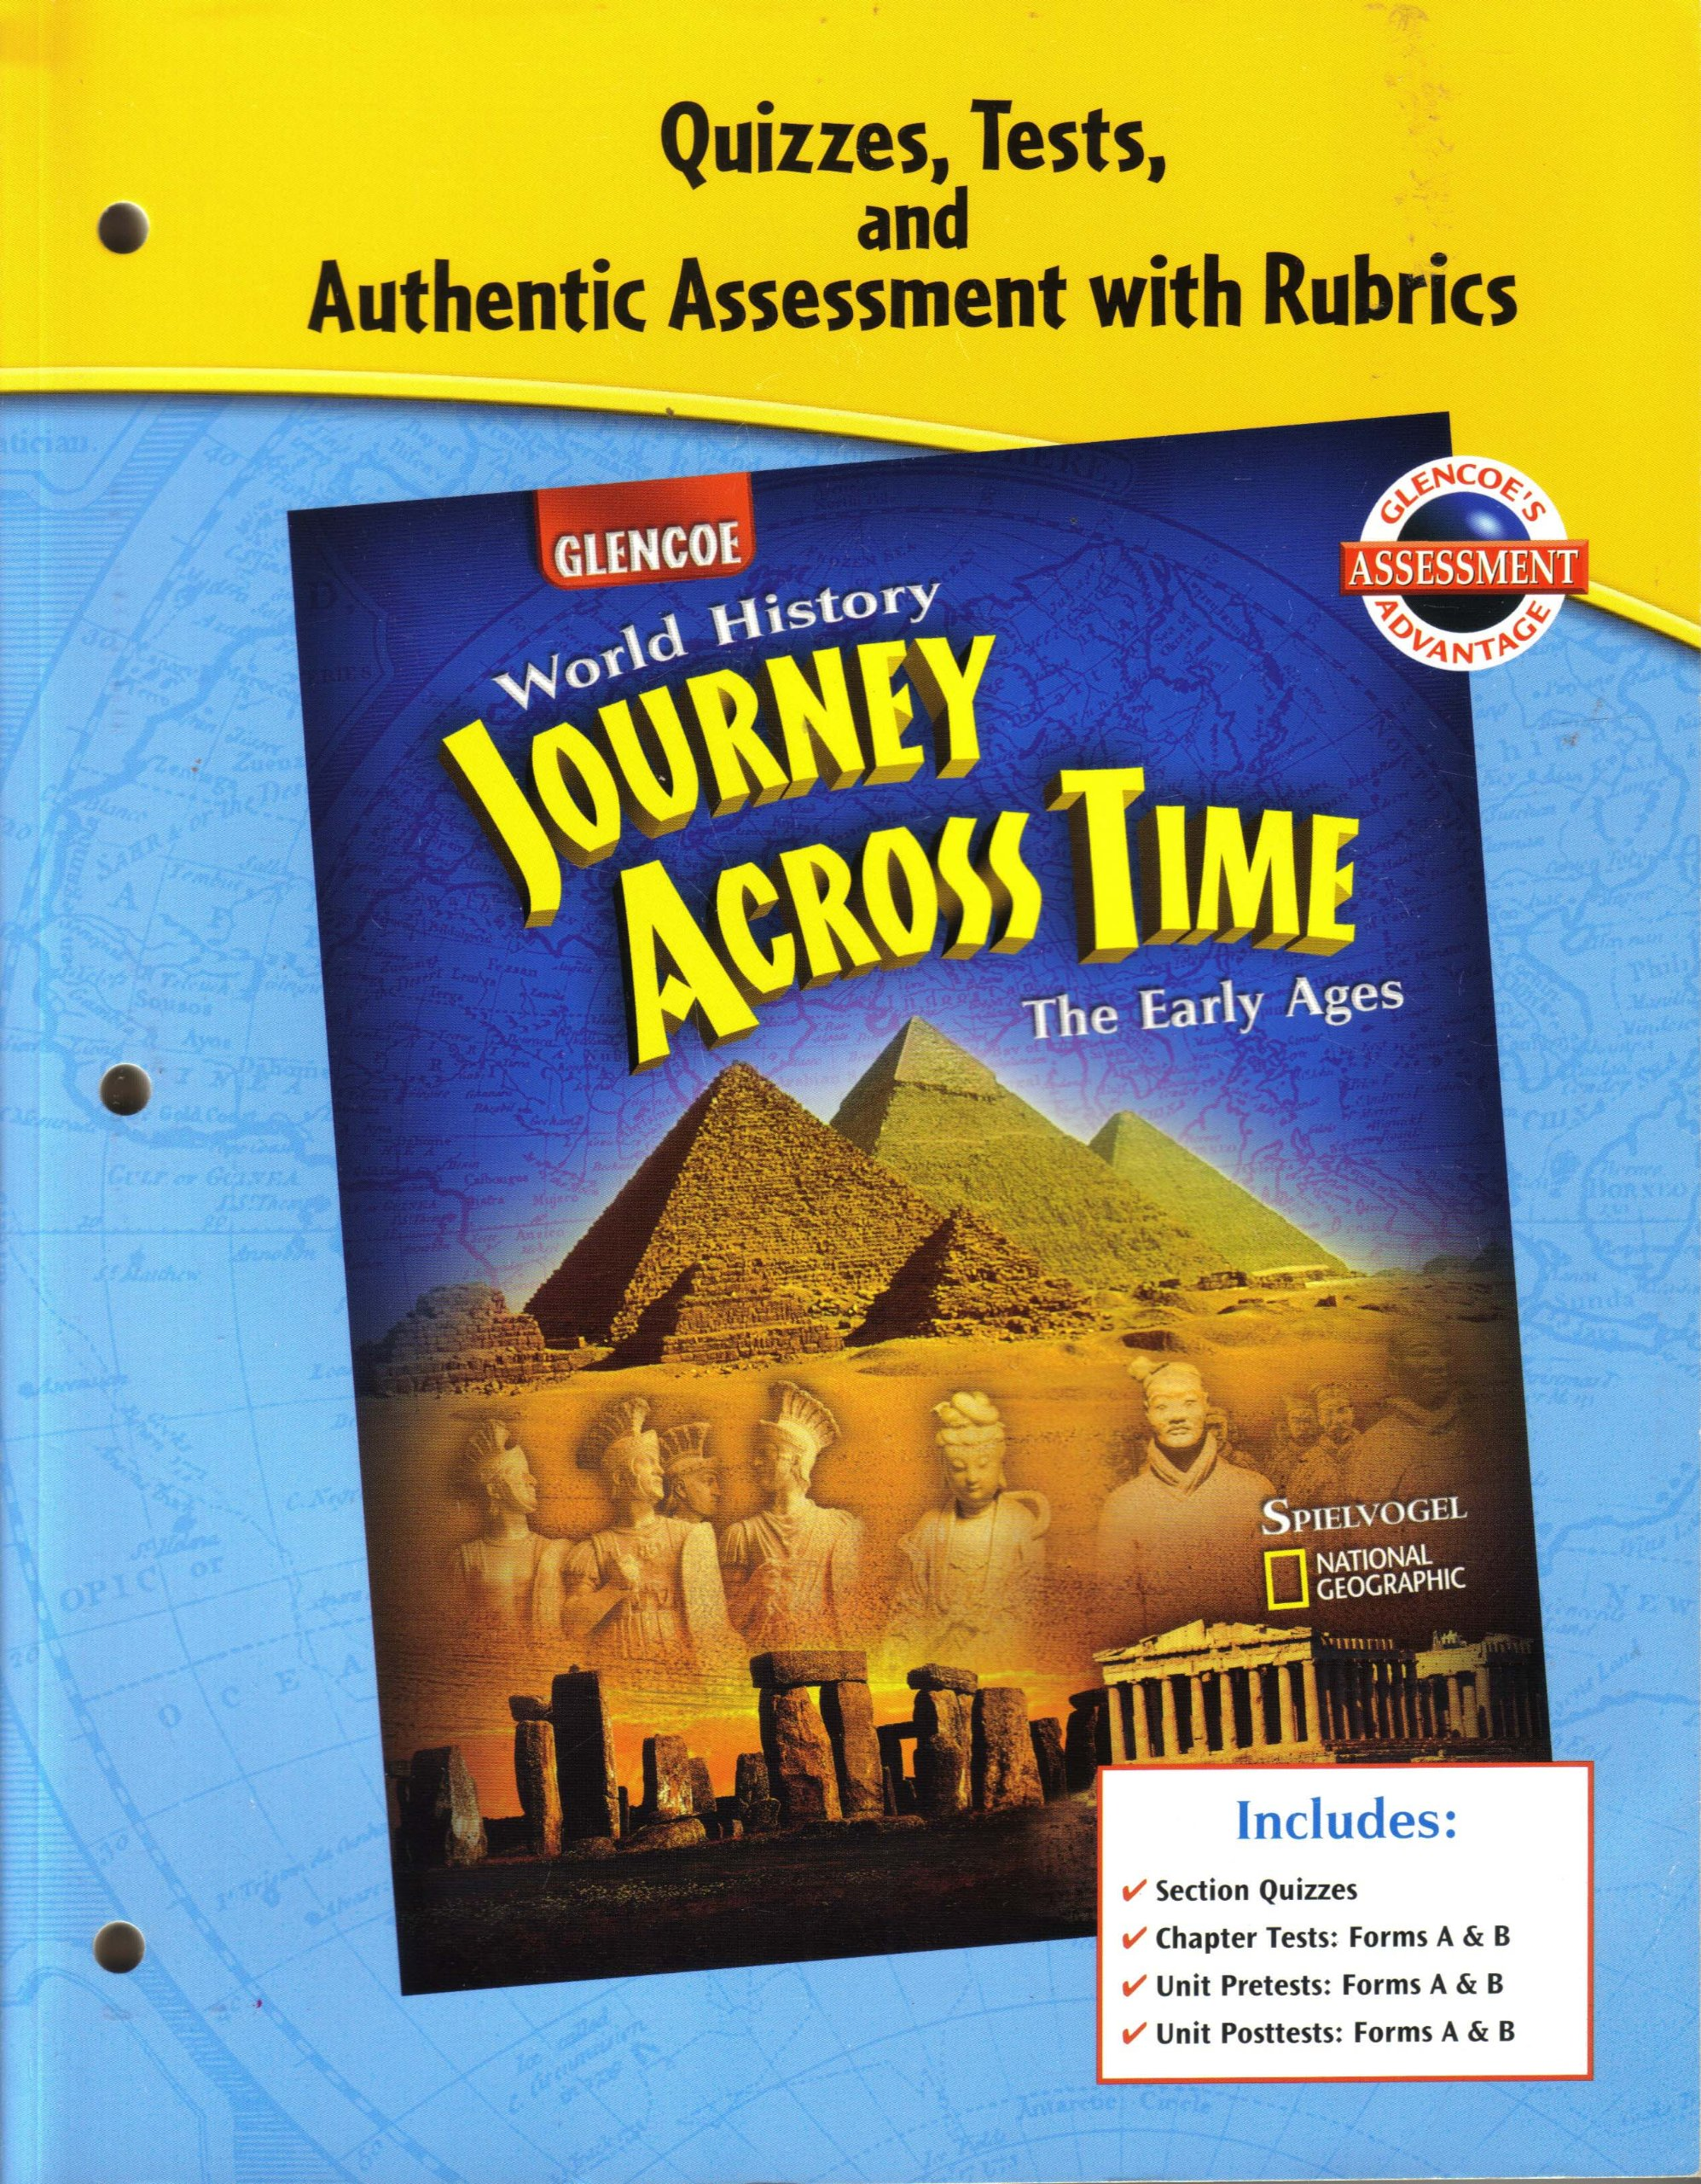 """Quizzes, Tests, and Authentic Assessment with Rubrics for Glencoe """"World  History:Journey Across Time: Glencoe: 9780078603204: Amazon.com: Books"""